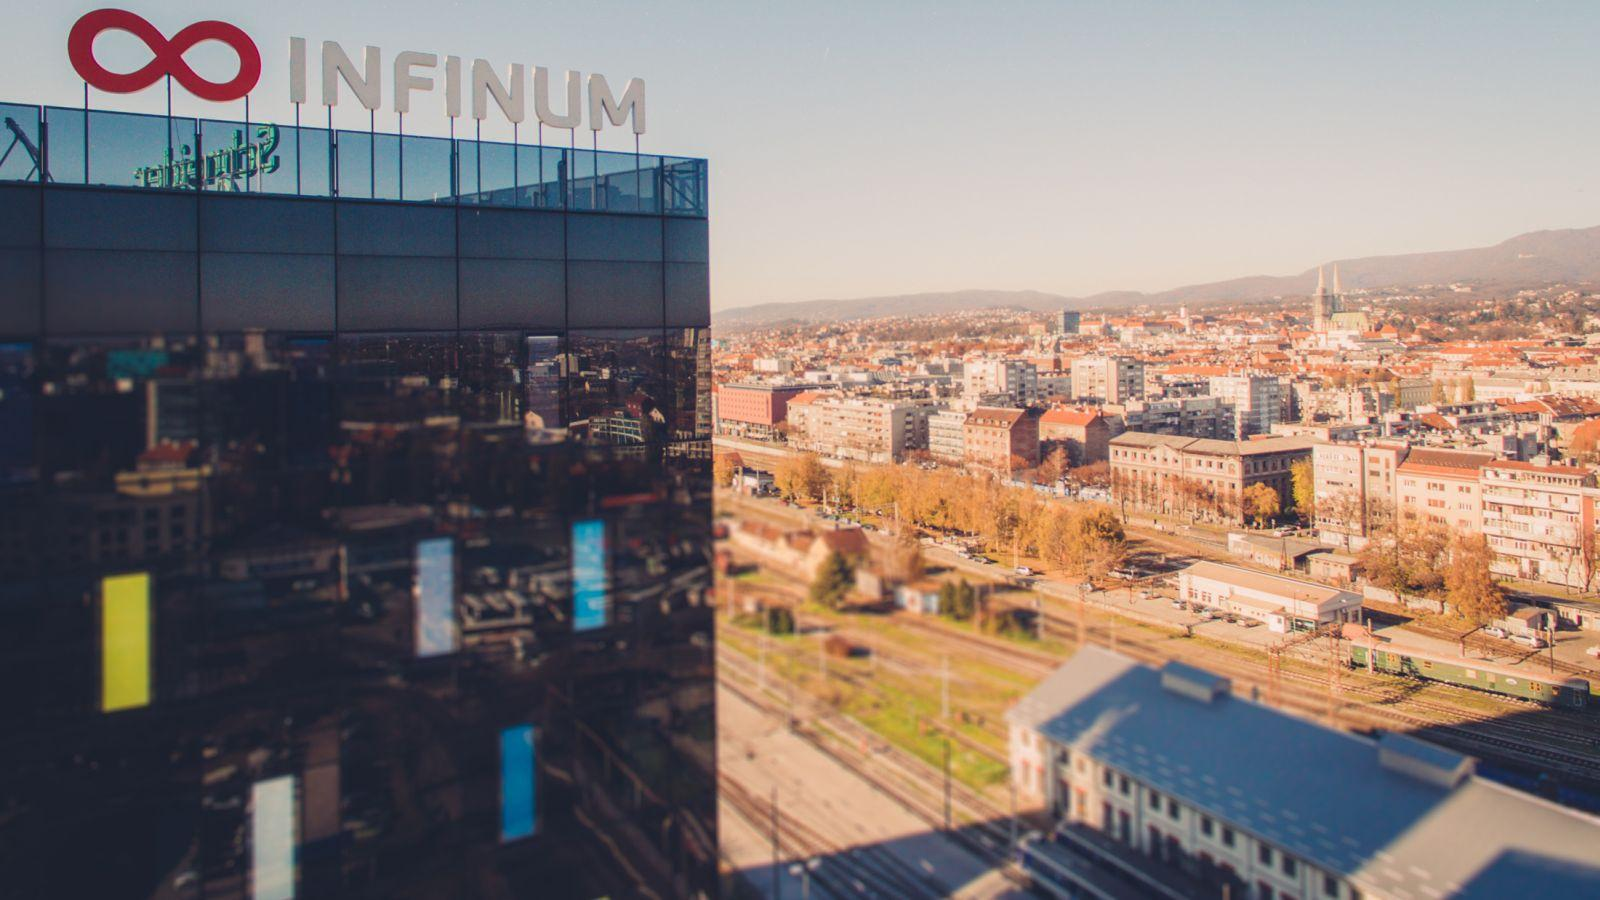 b Infinums headquarters in Zagreb